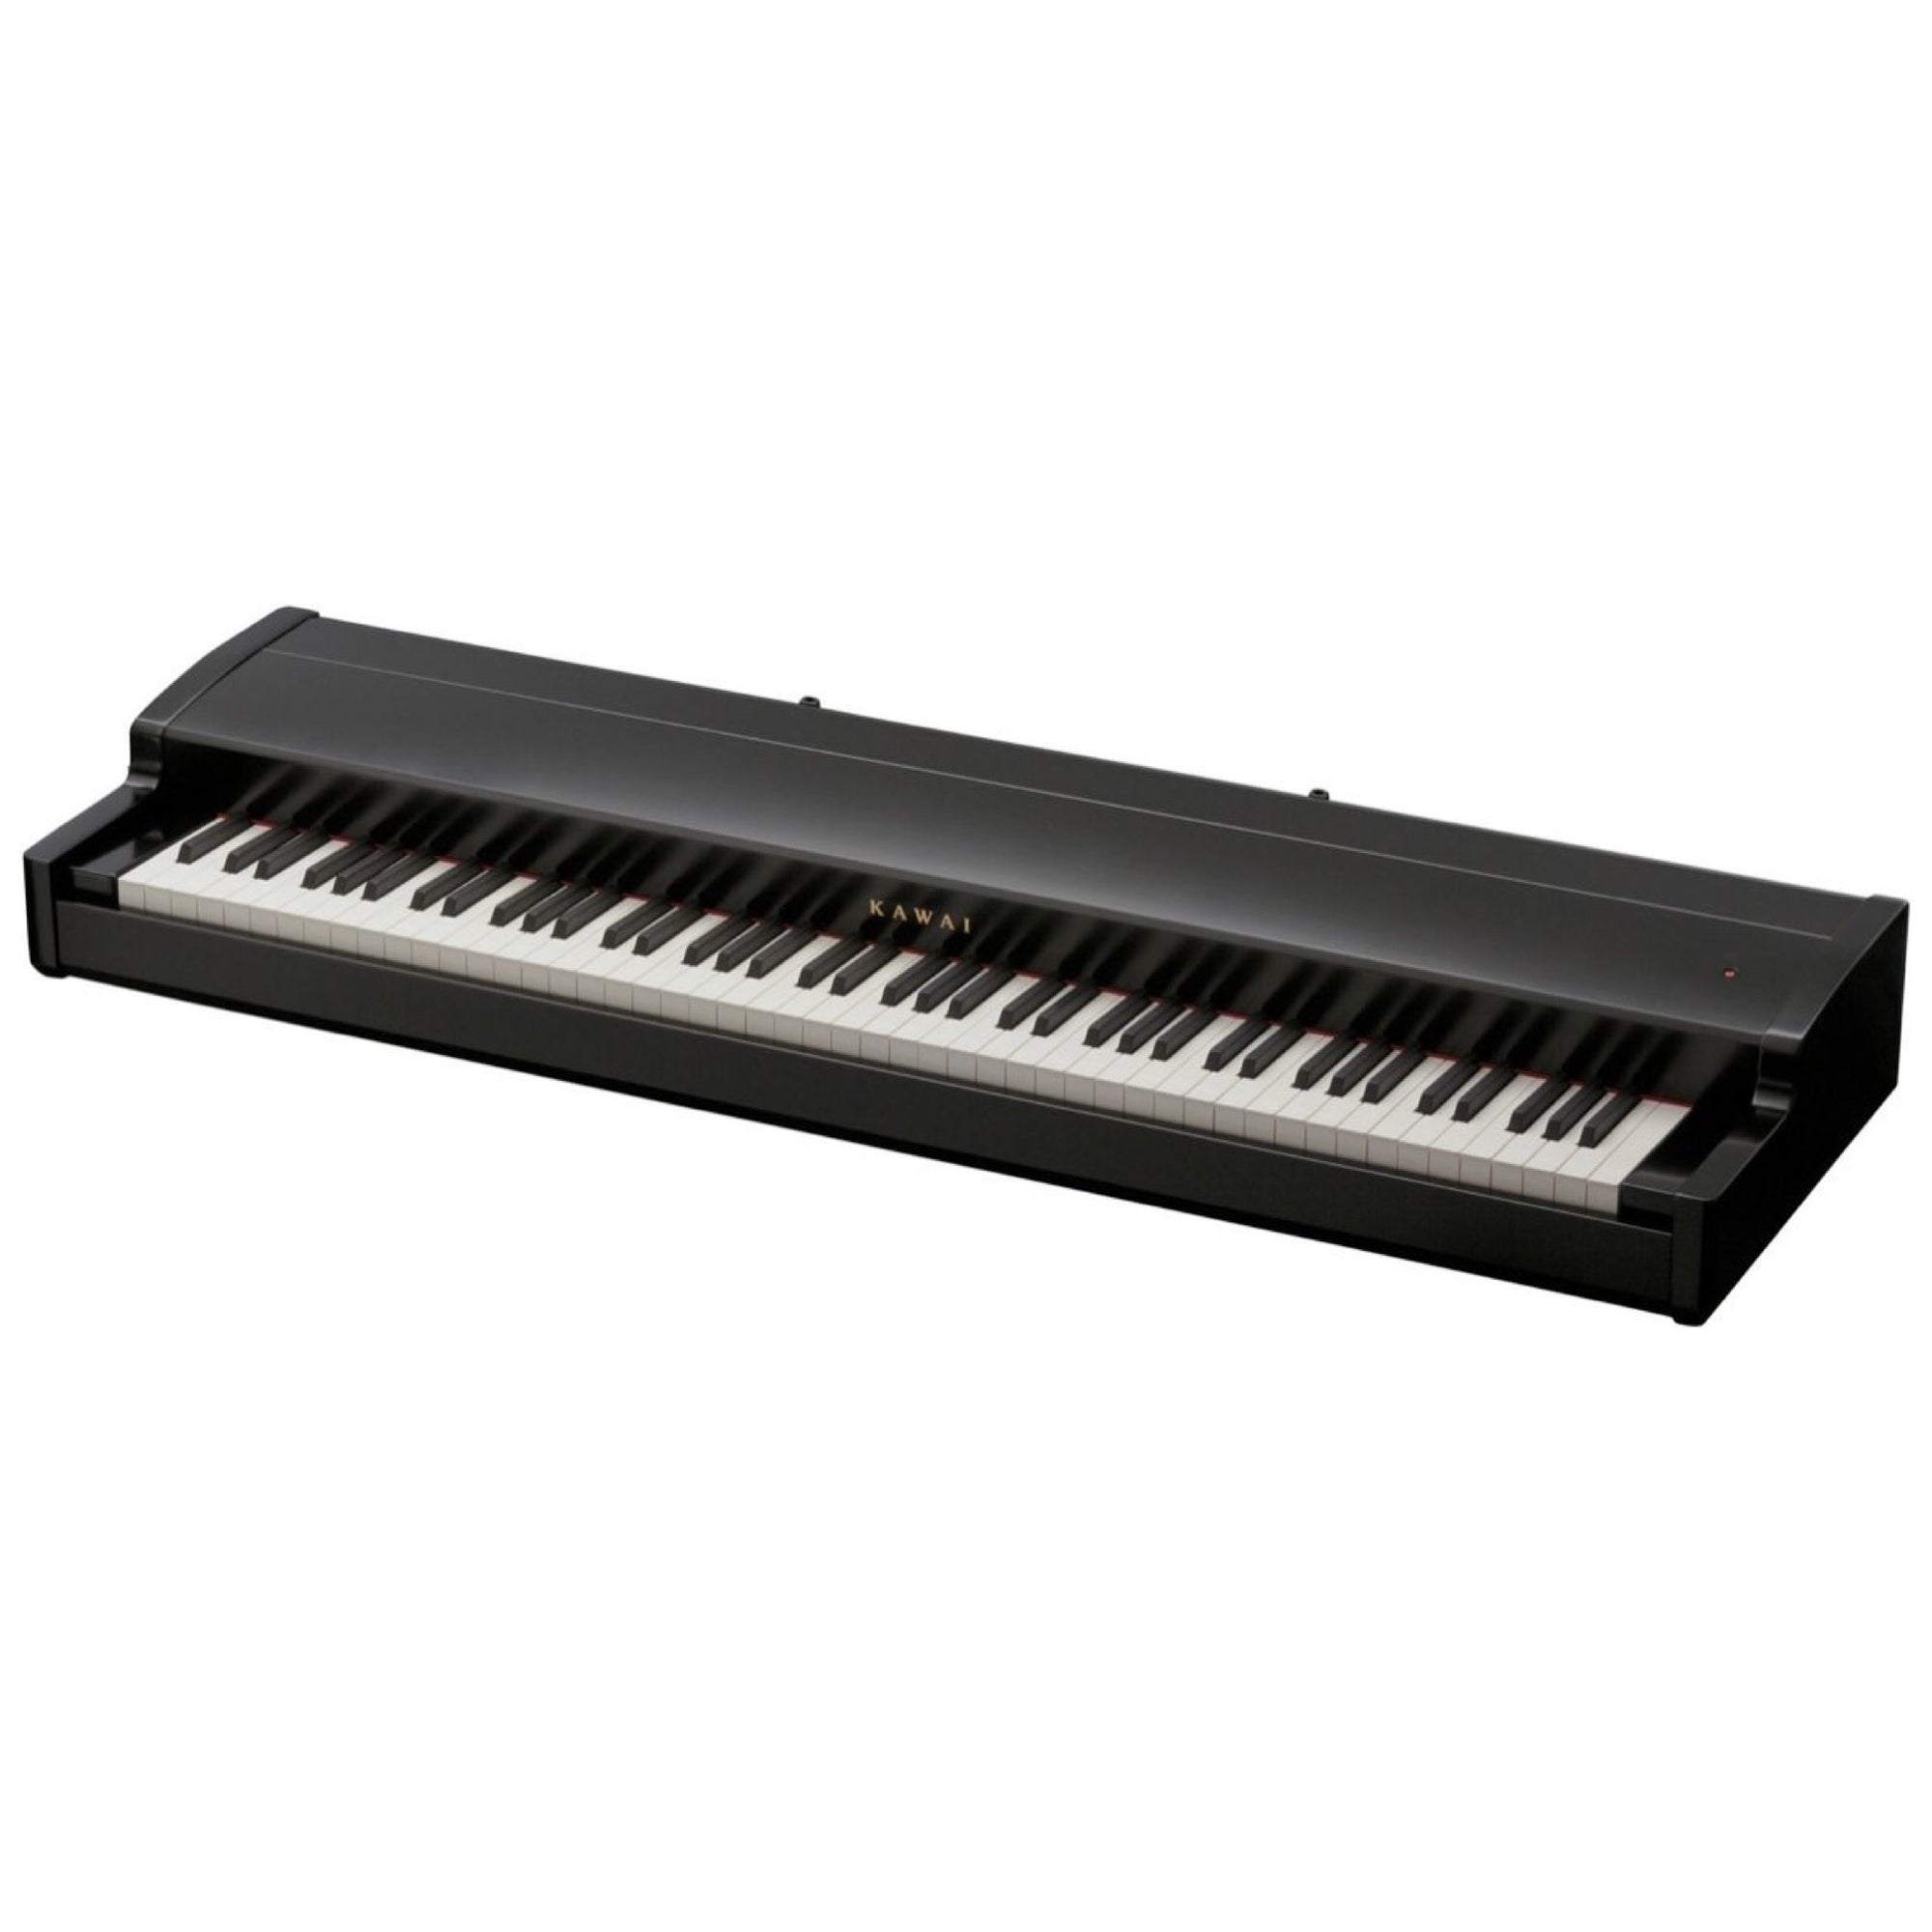 Kawai VPC1 Virtual Piano Controller Keyboard, 88-Key